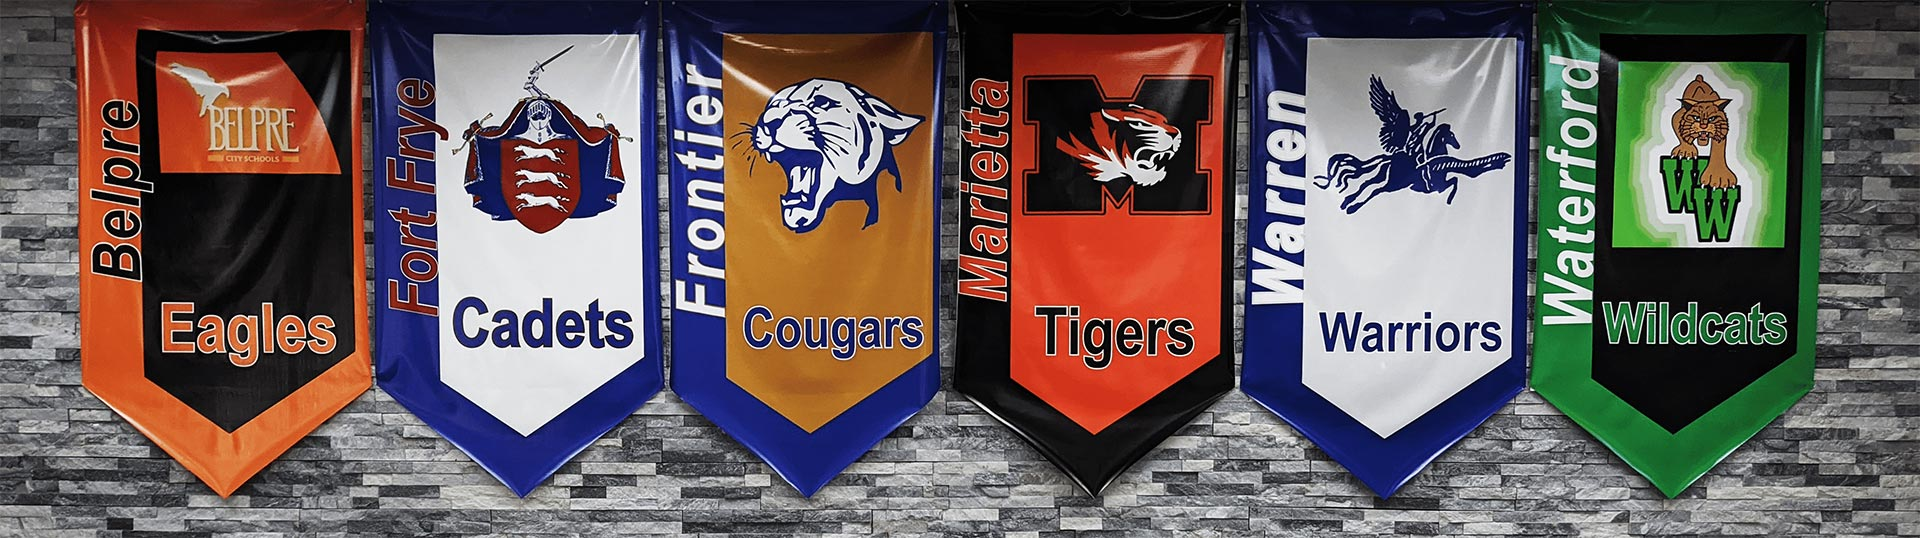 Home School Banners